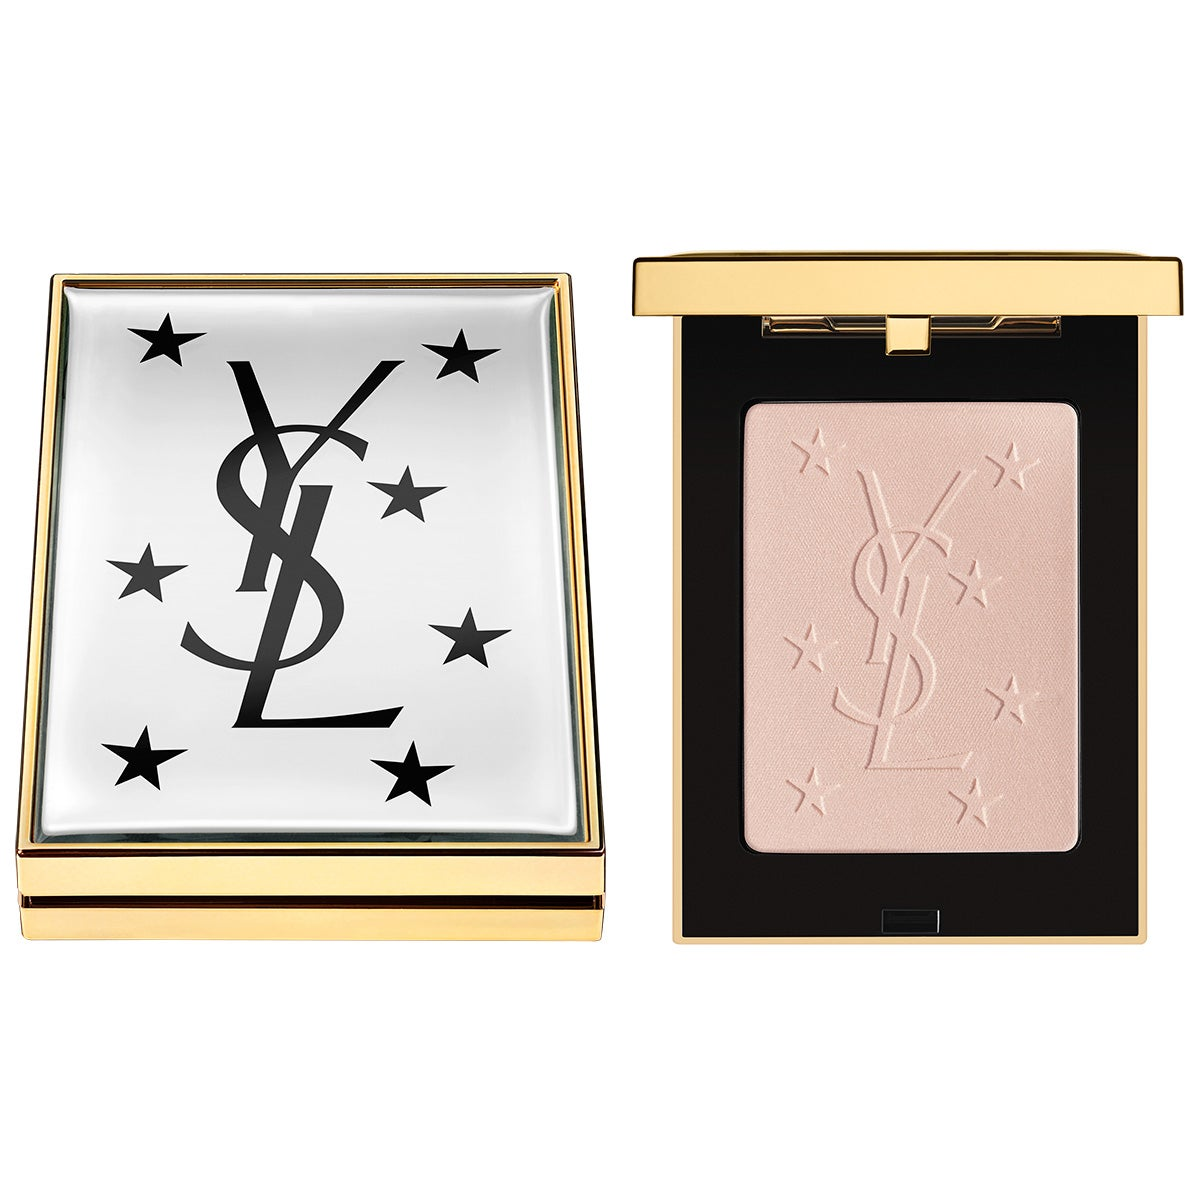 Yves Saint Laurent Couture Face Palette Collector - Star Devotion Highlighter